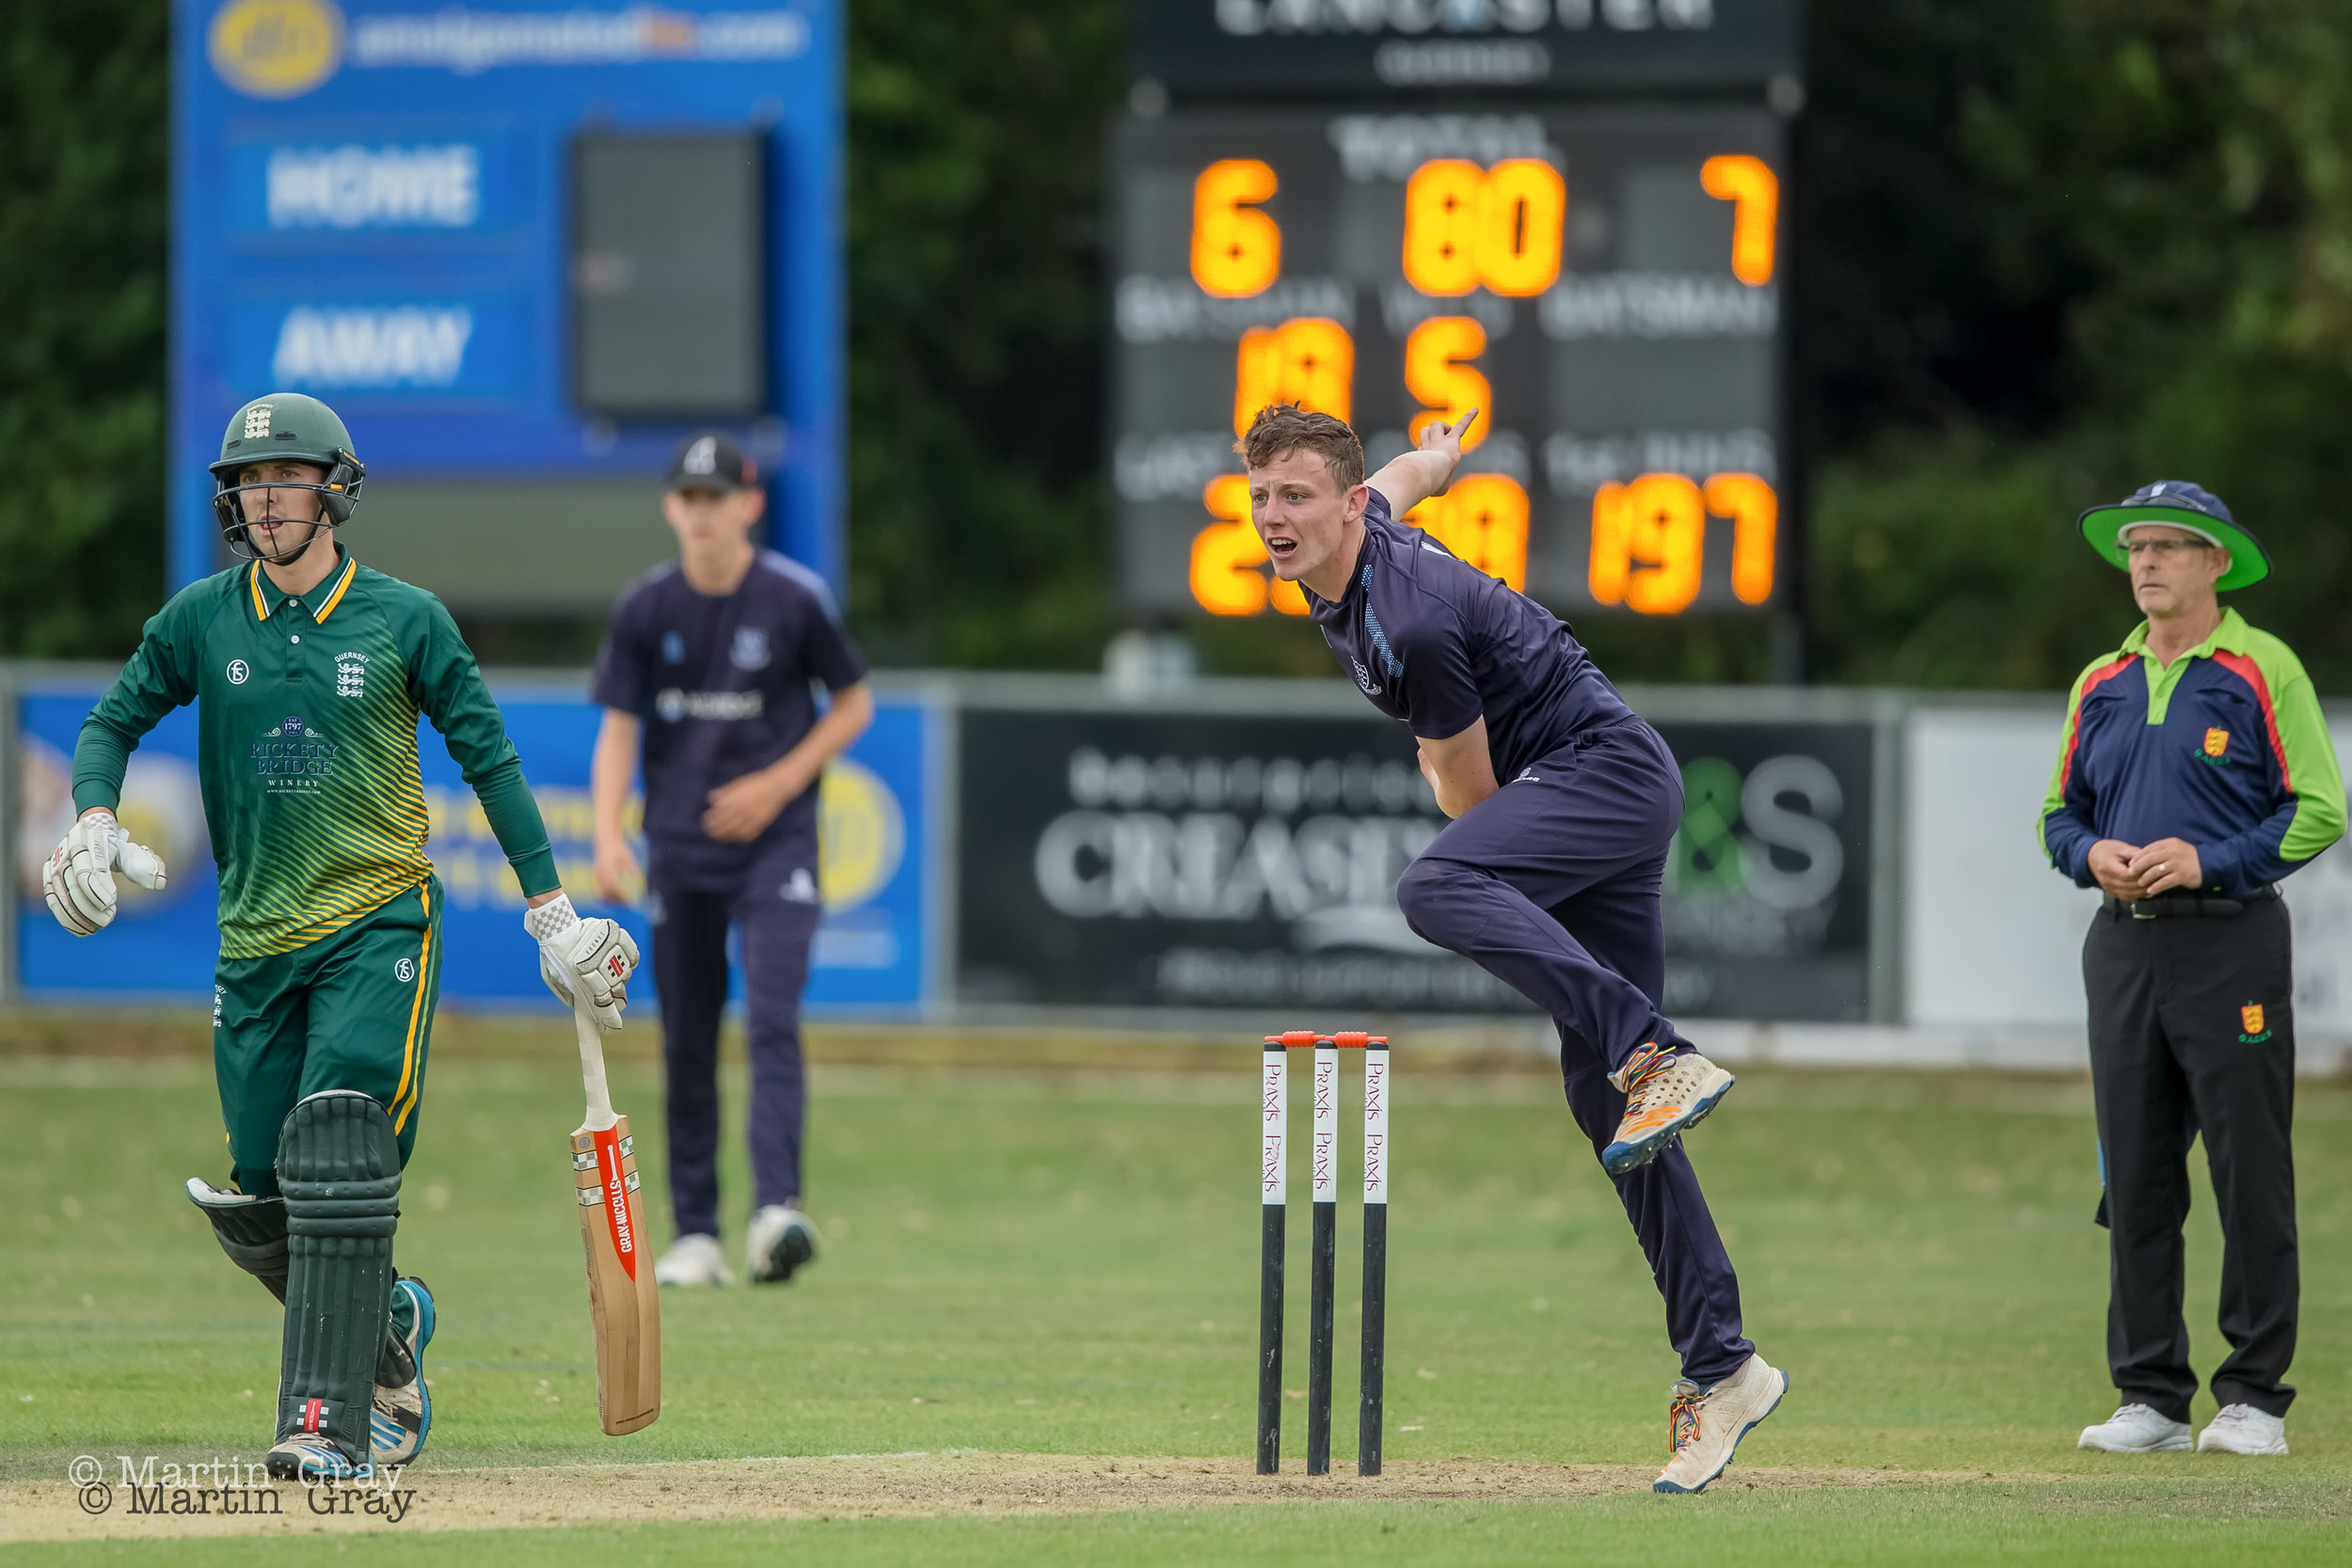 Guernsey XI and Guernsey U19's v Sussex Academy played at KGV Playing Fields August 4th and 5th 2019… Sussex Academy win both games…